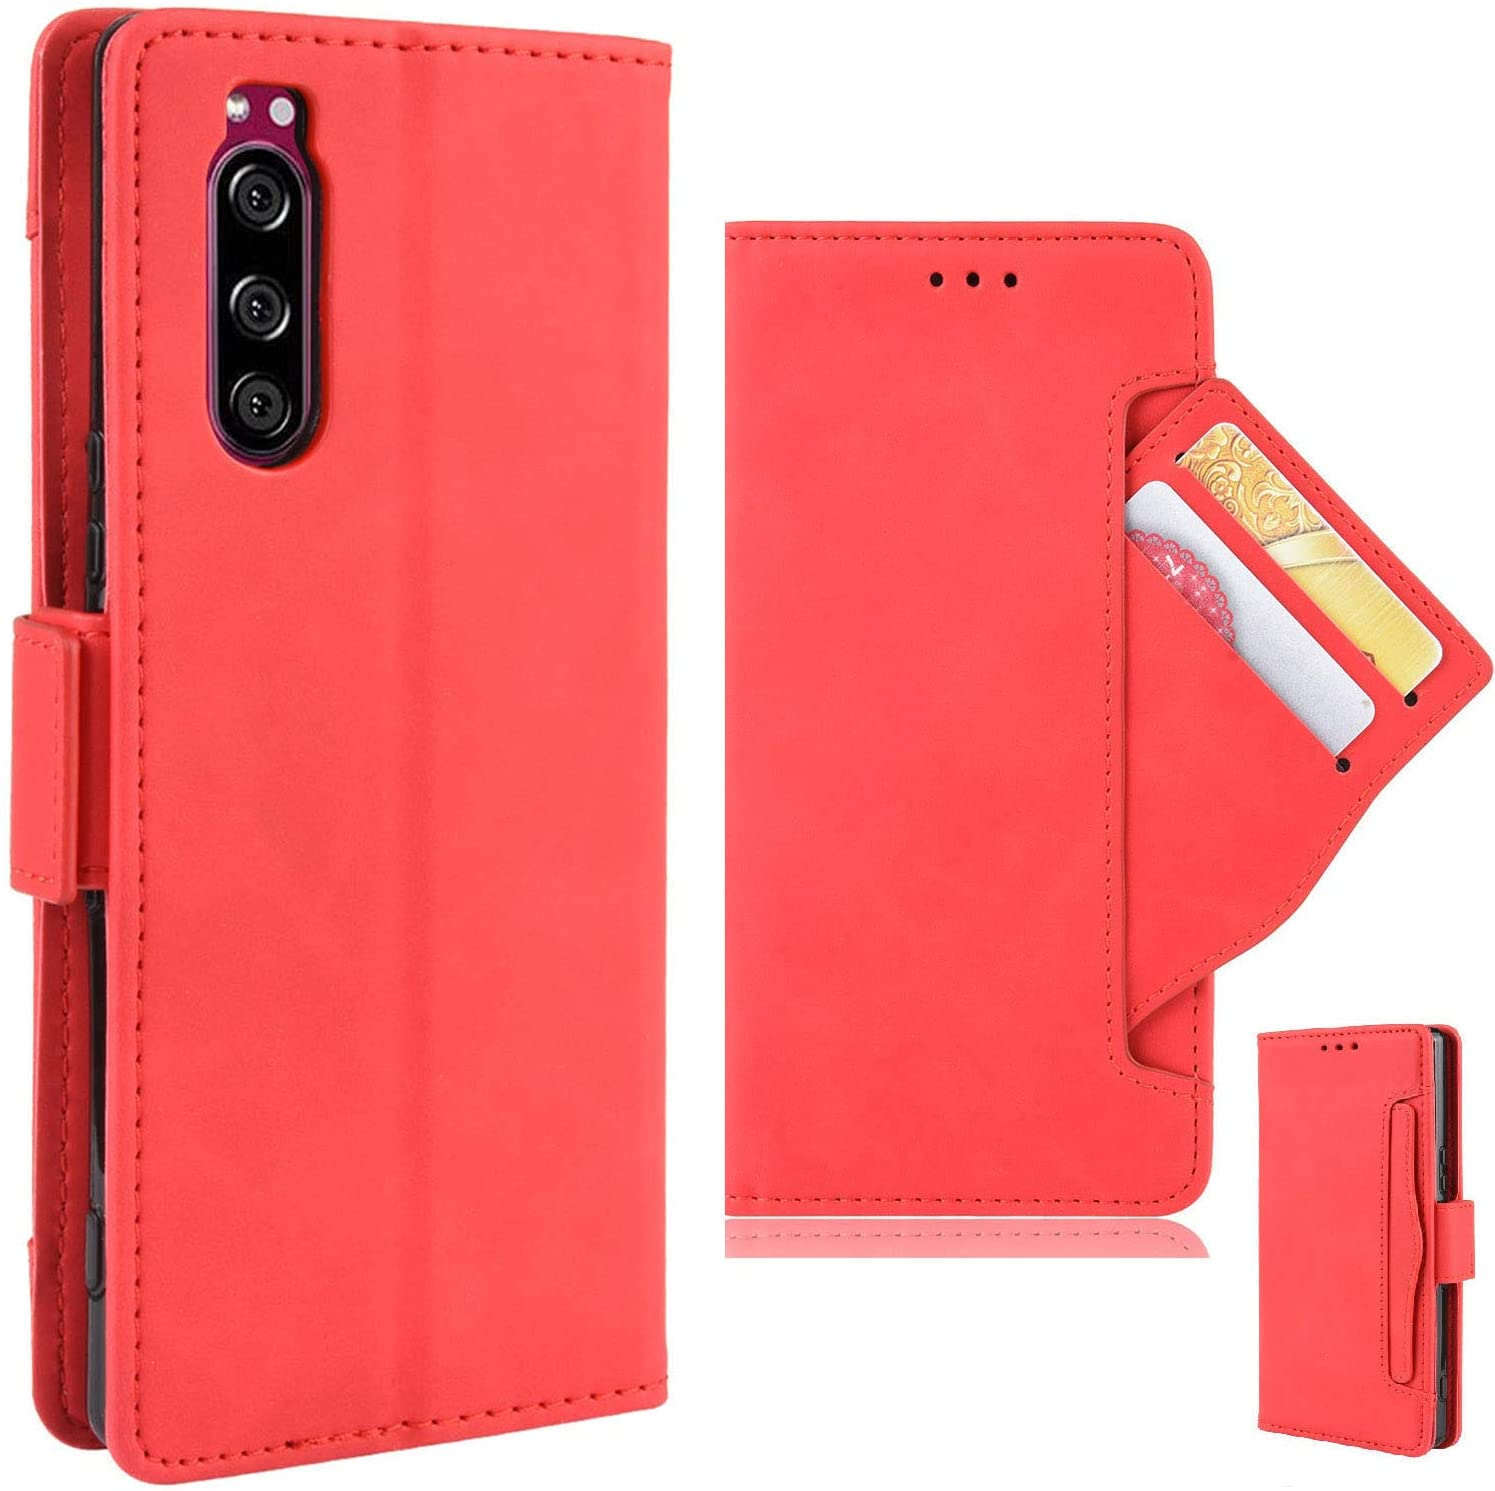 Sony Xperia 5 PU Leather Kickstand Wallet Phone Case, Flip Magnetic Cover with Card Slot and Removable Card Holder (5 Colors, red),30